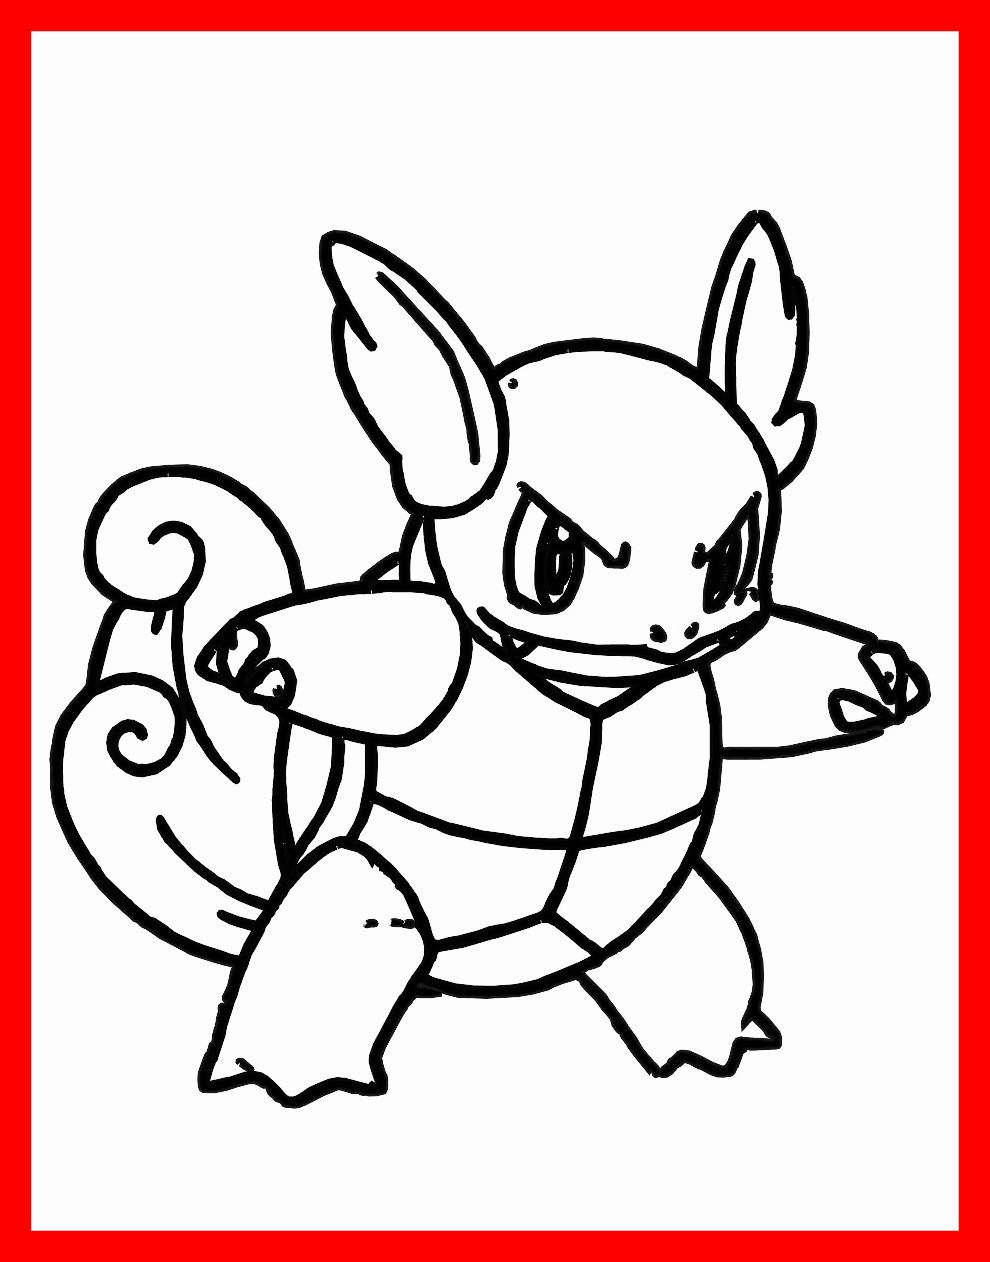 Charizard Colouring Pages at GetDrawings | Free download